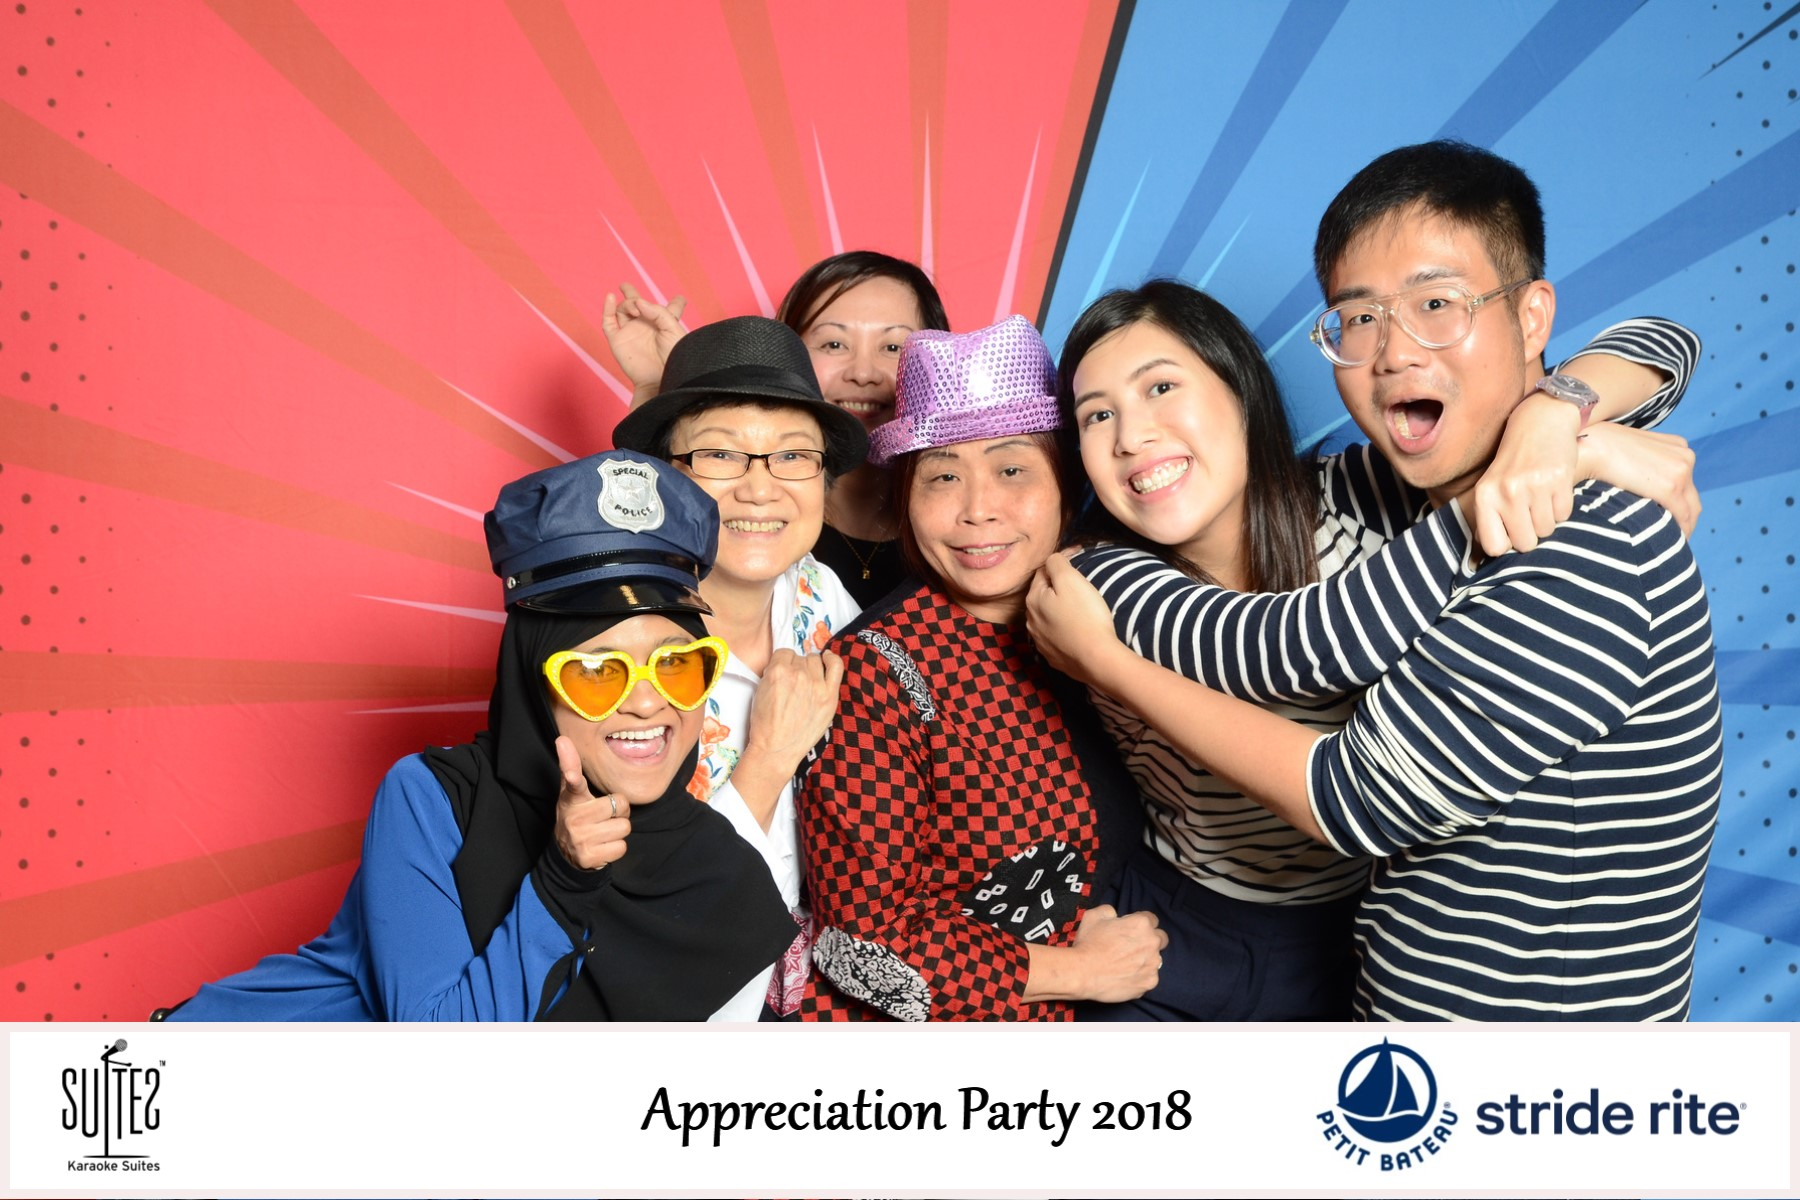 Photobooth with Fung Kids Appreciation Party on 12 October 2018